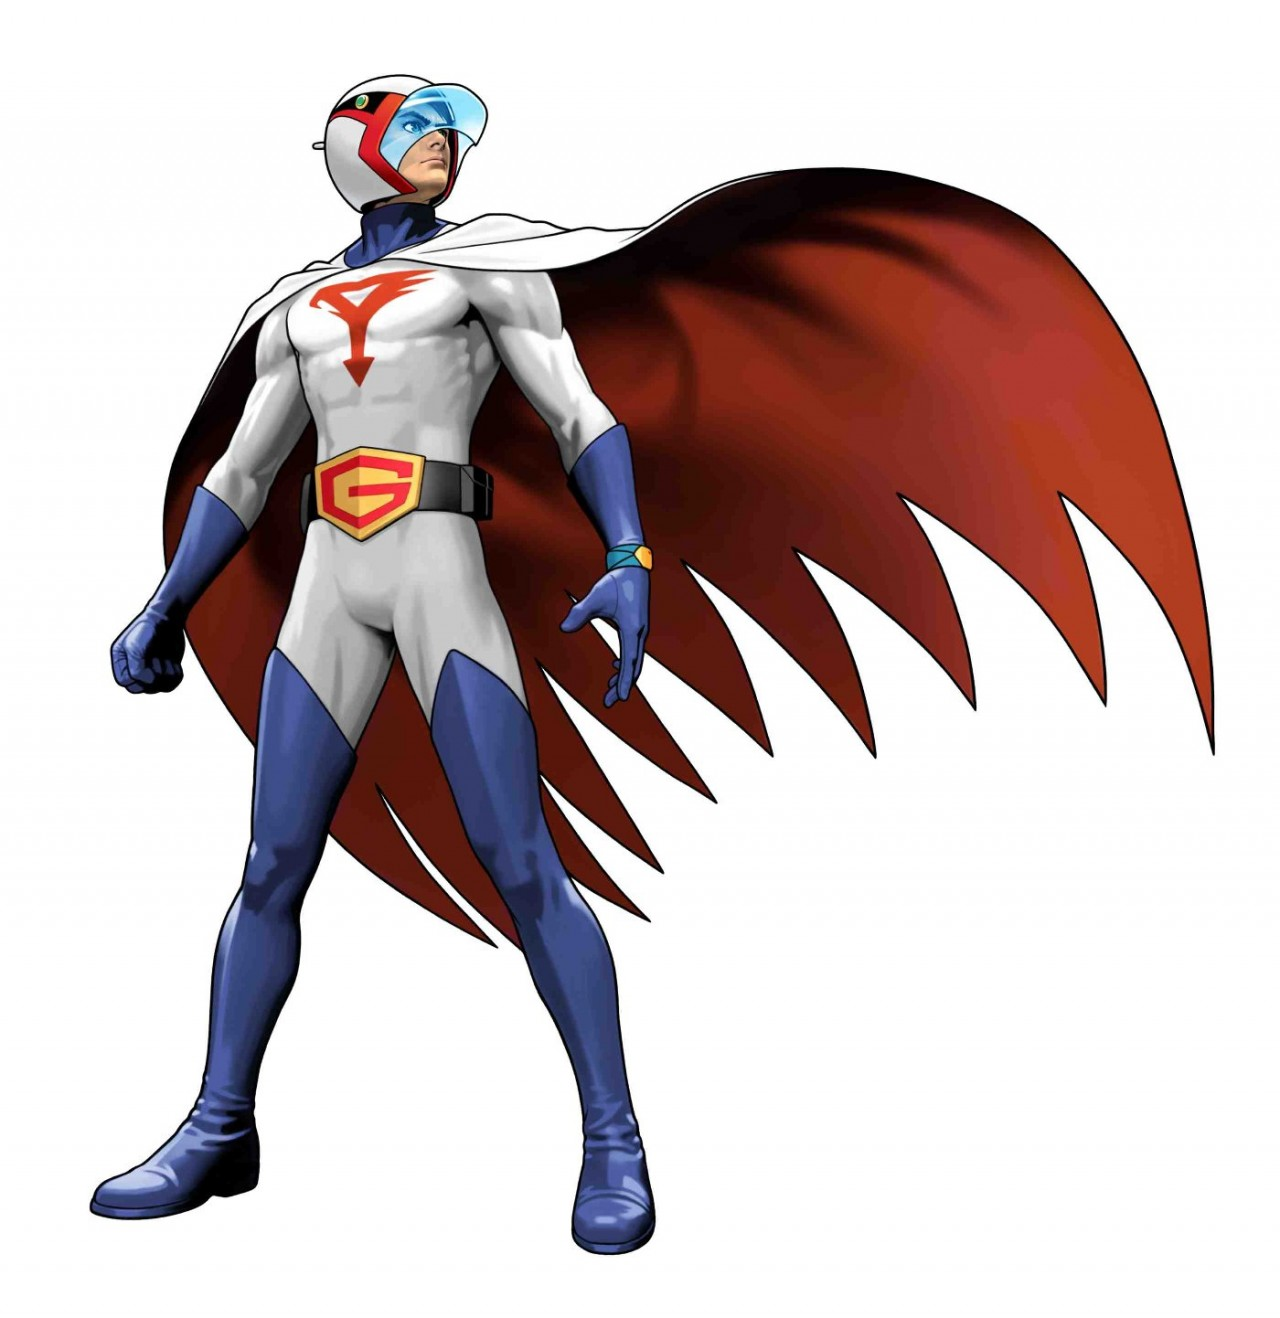 G Force Anime Characters : Ken washio gatchaman wiki fandom powered by wikia